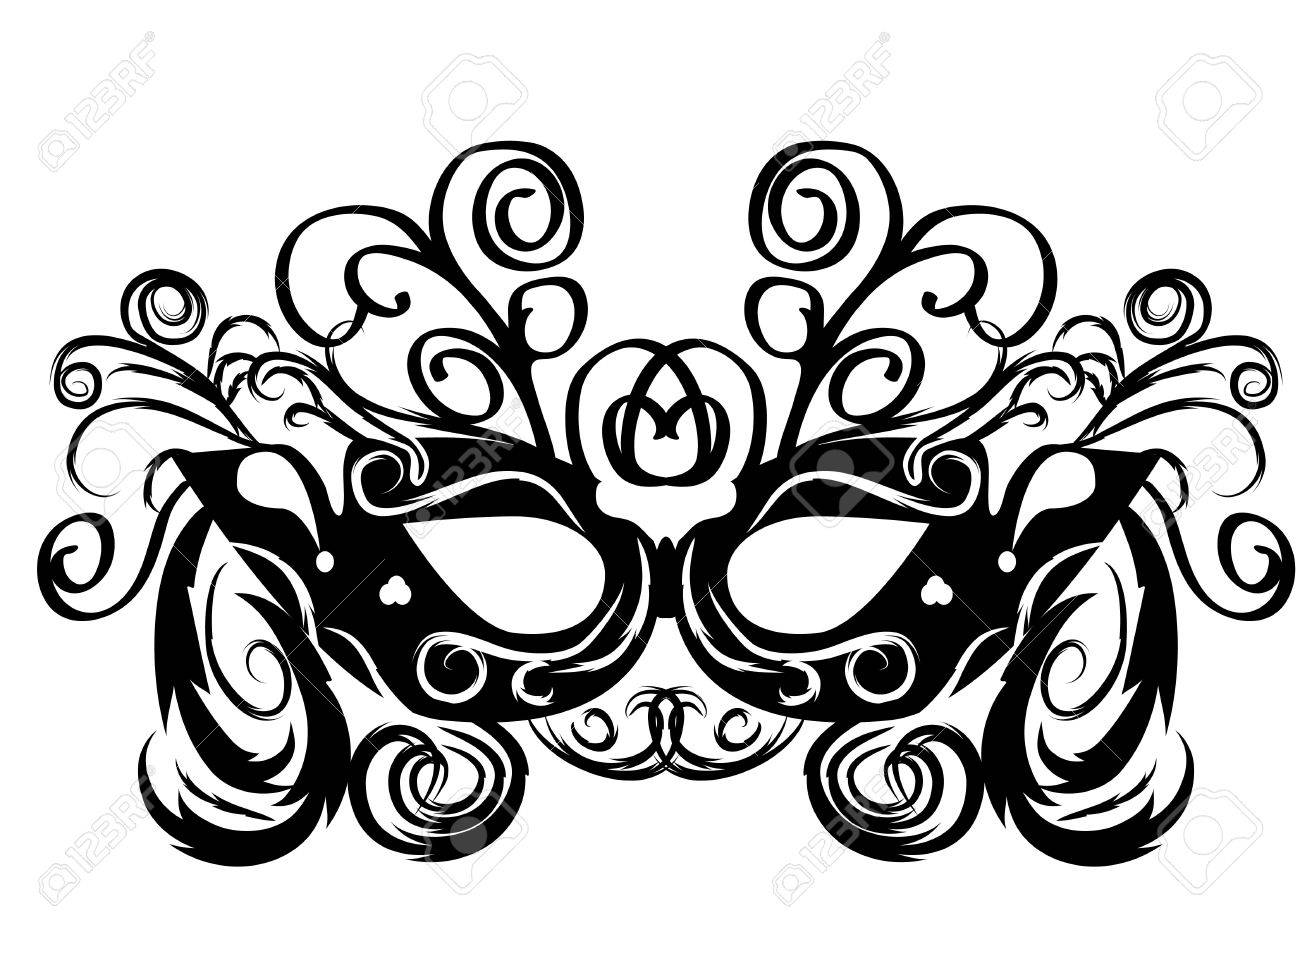 black vector carnival masks. abctract isolated illustration Stock Vector - 12436460